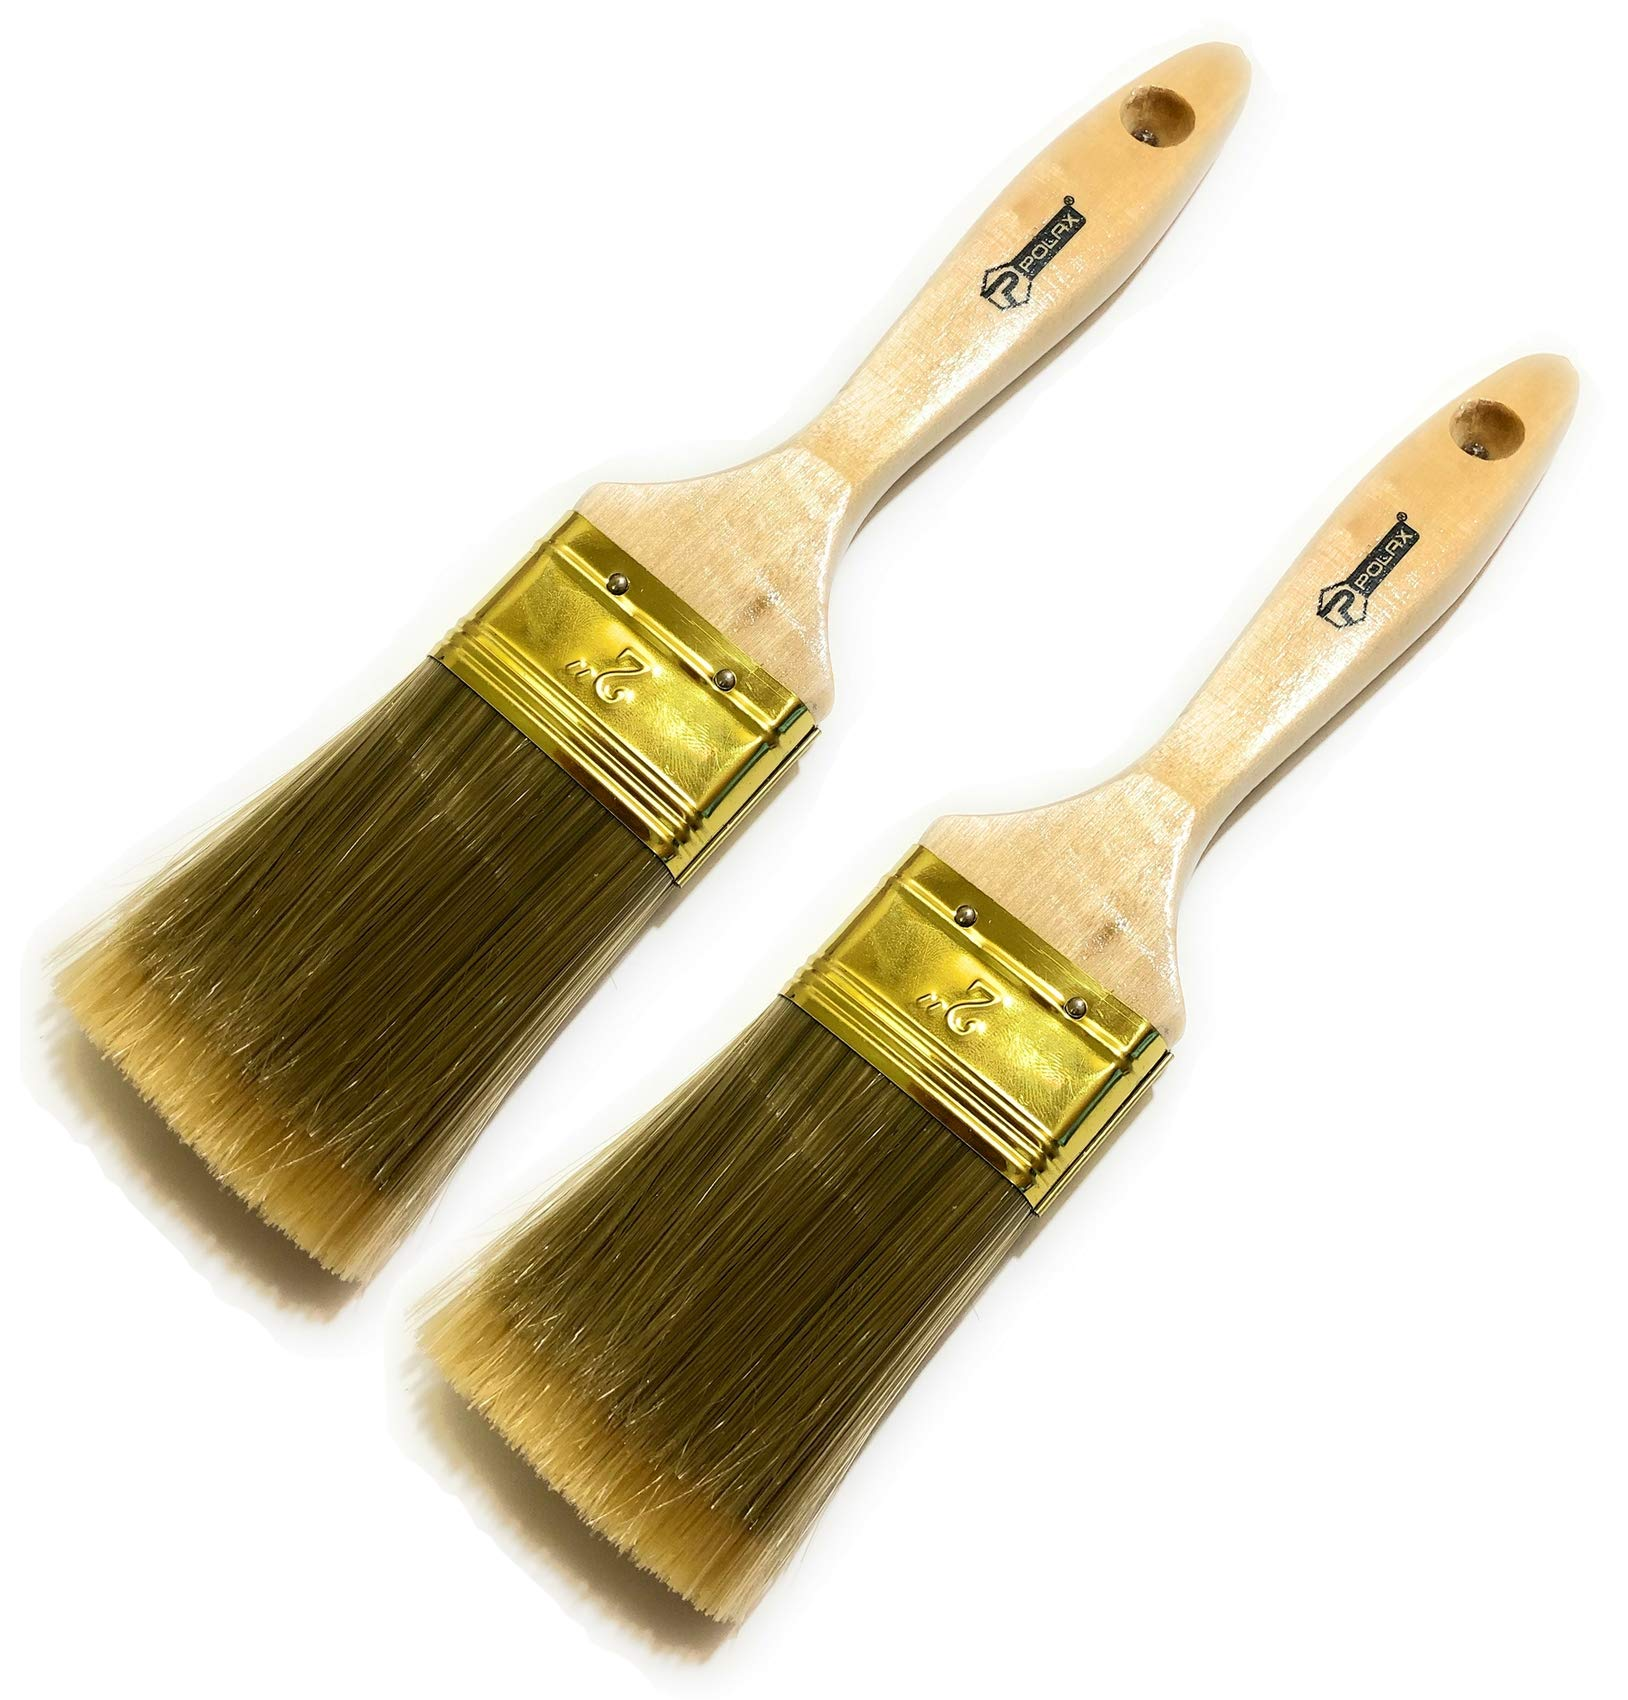 2 Pack - 2 inch Premium Paint Brushes - Long